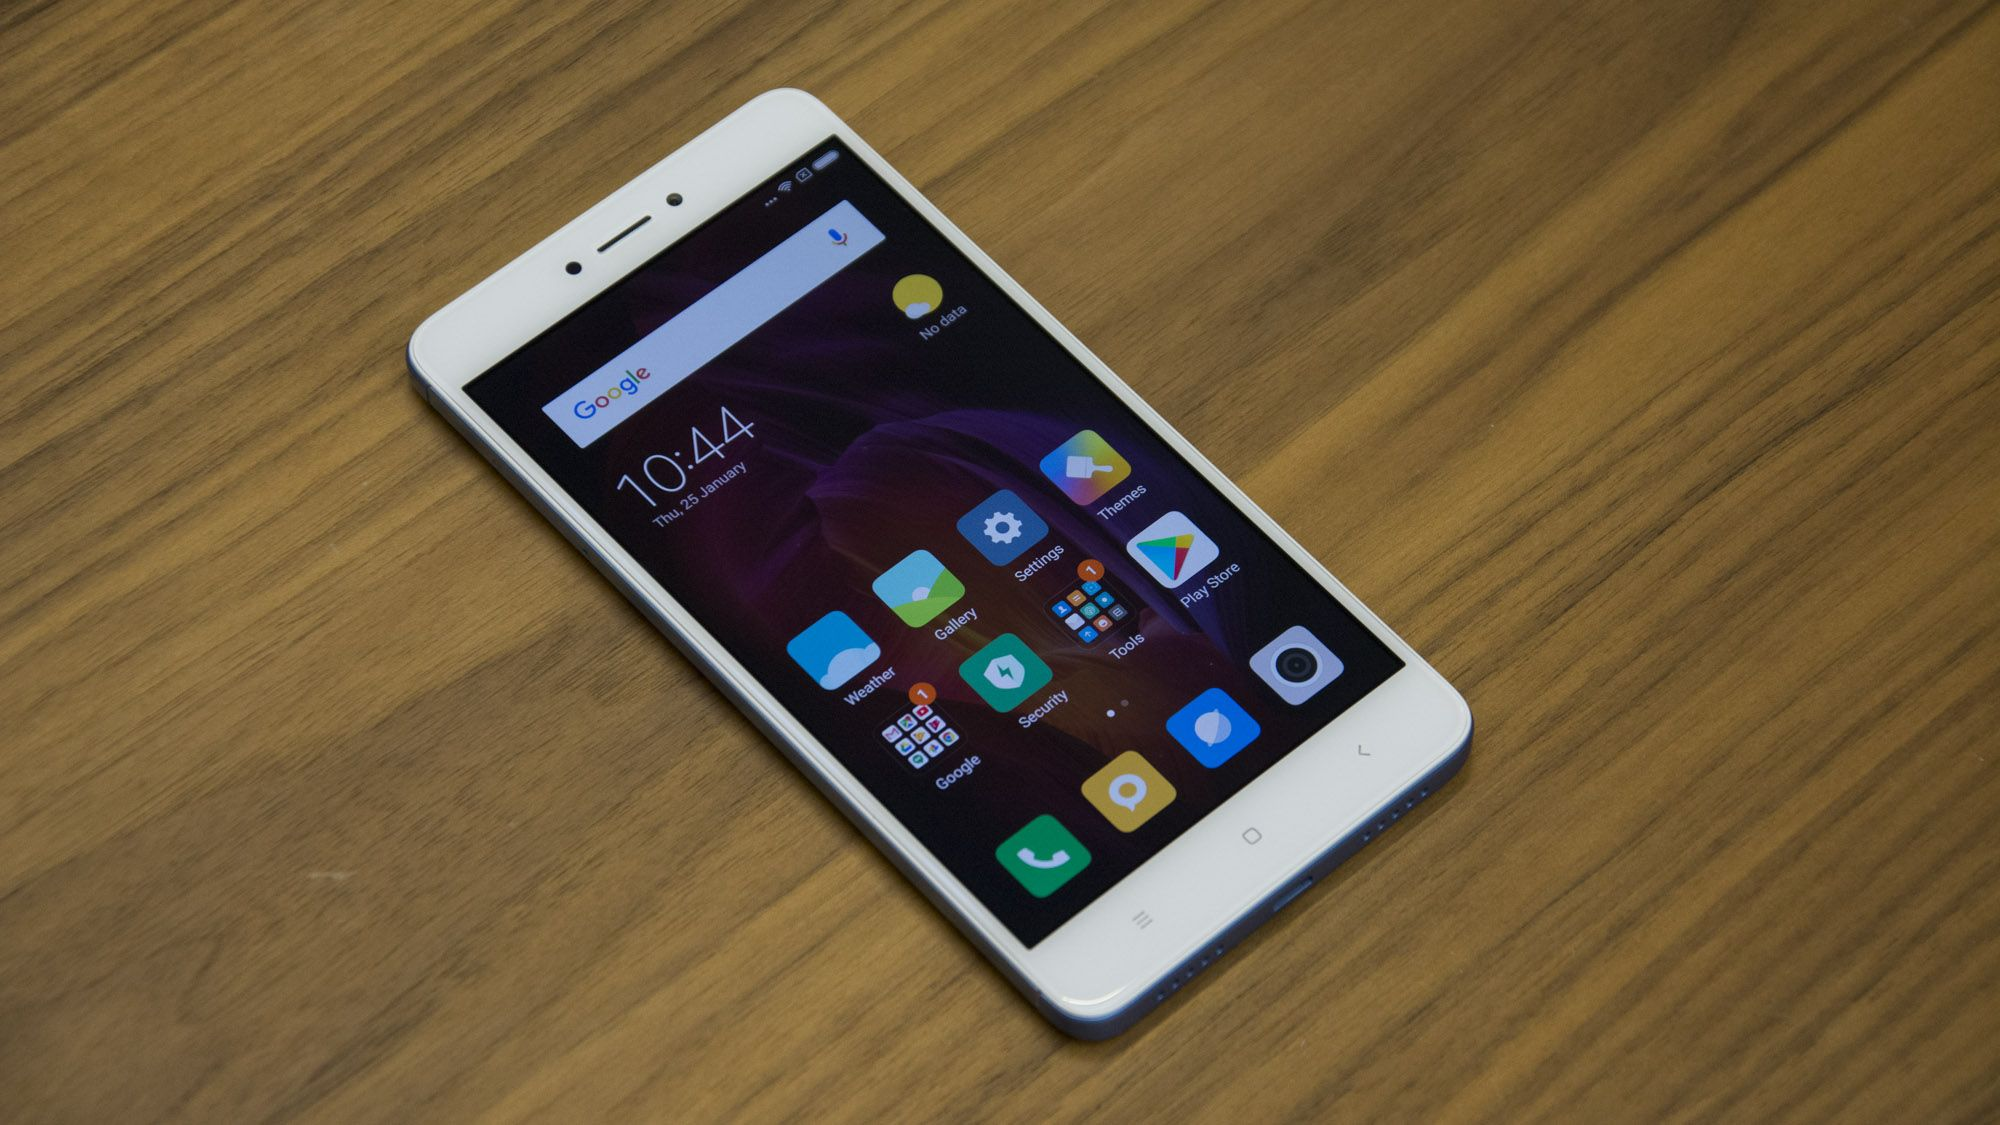 xiaomi redmi 4x prime redmi 4x wholesale xiaomi redmi 4x shopping website